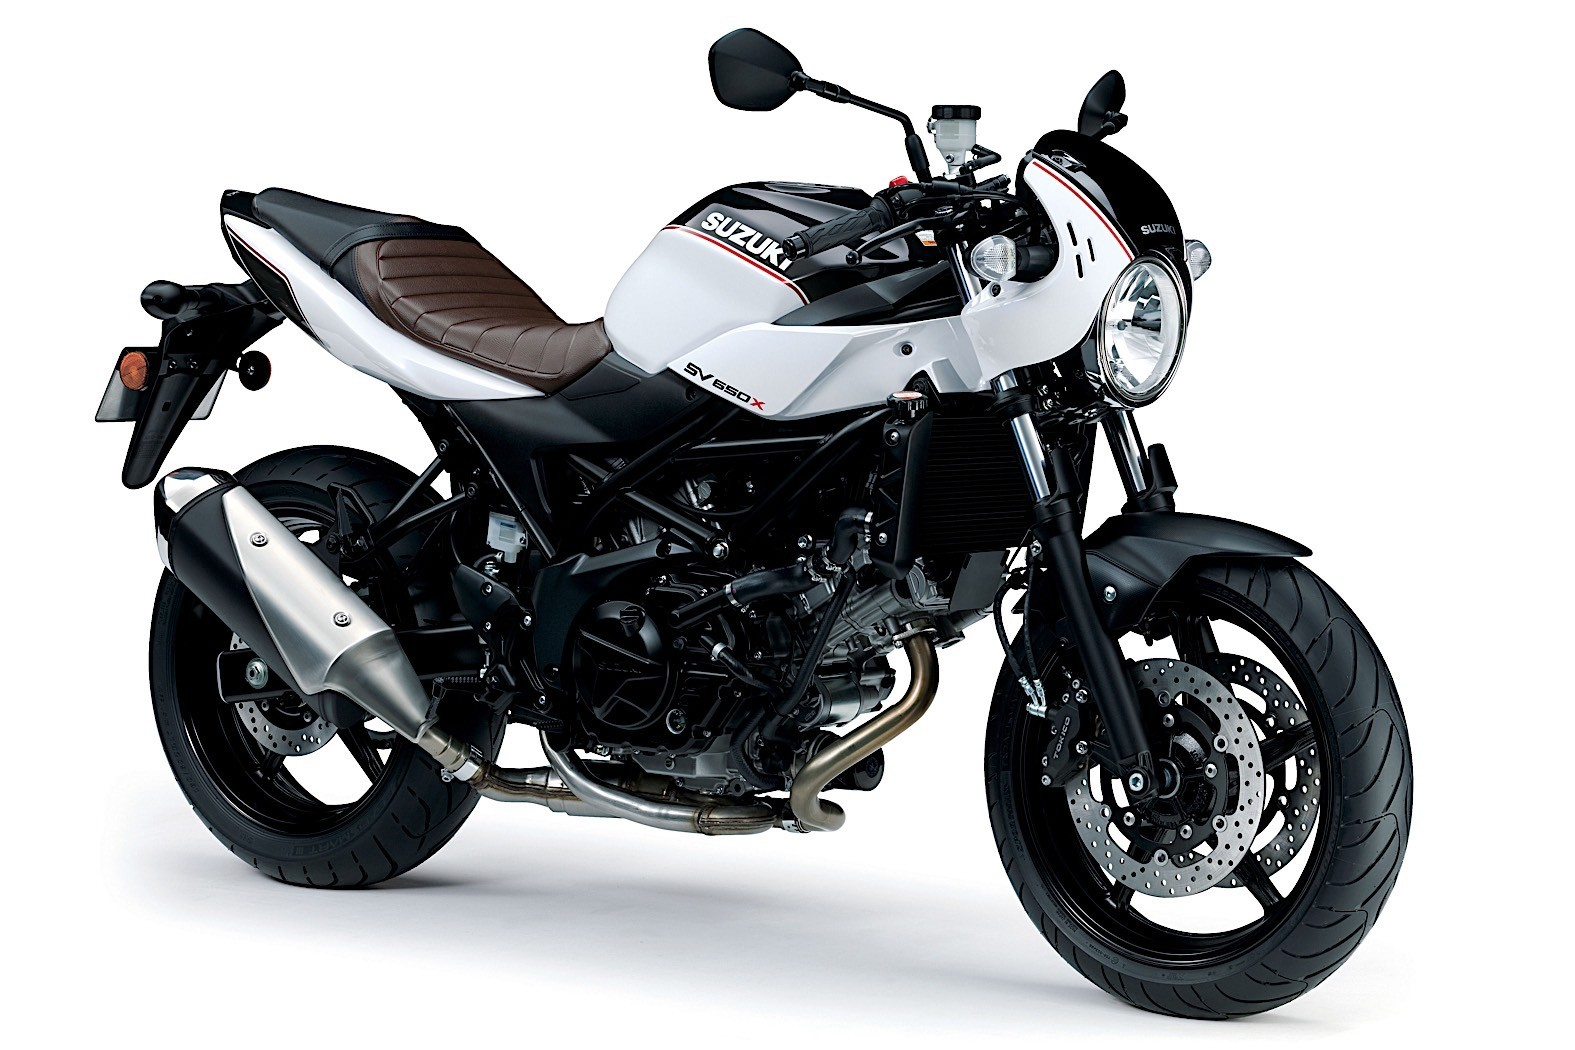 2019-suzuki-motorcycles-shine-in-new-colors-at-the-motorcycle-live-38